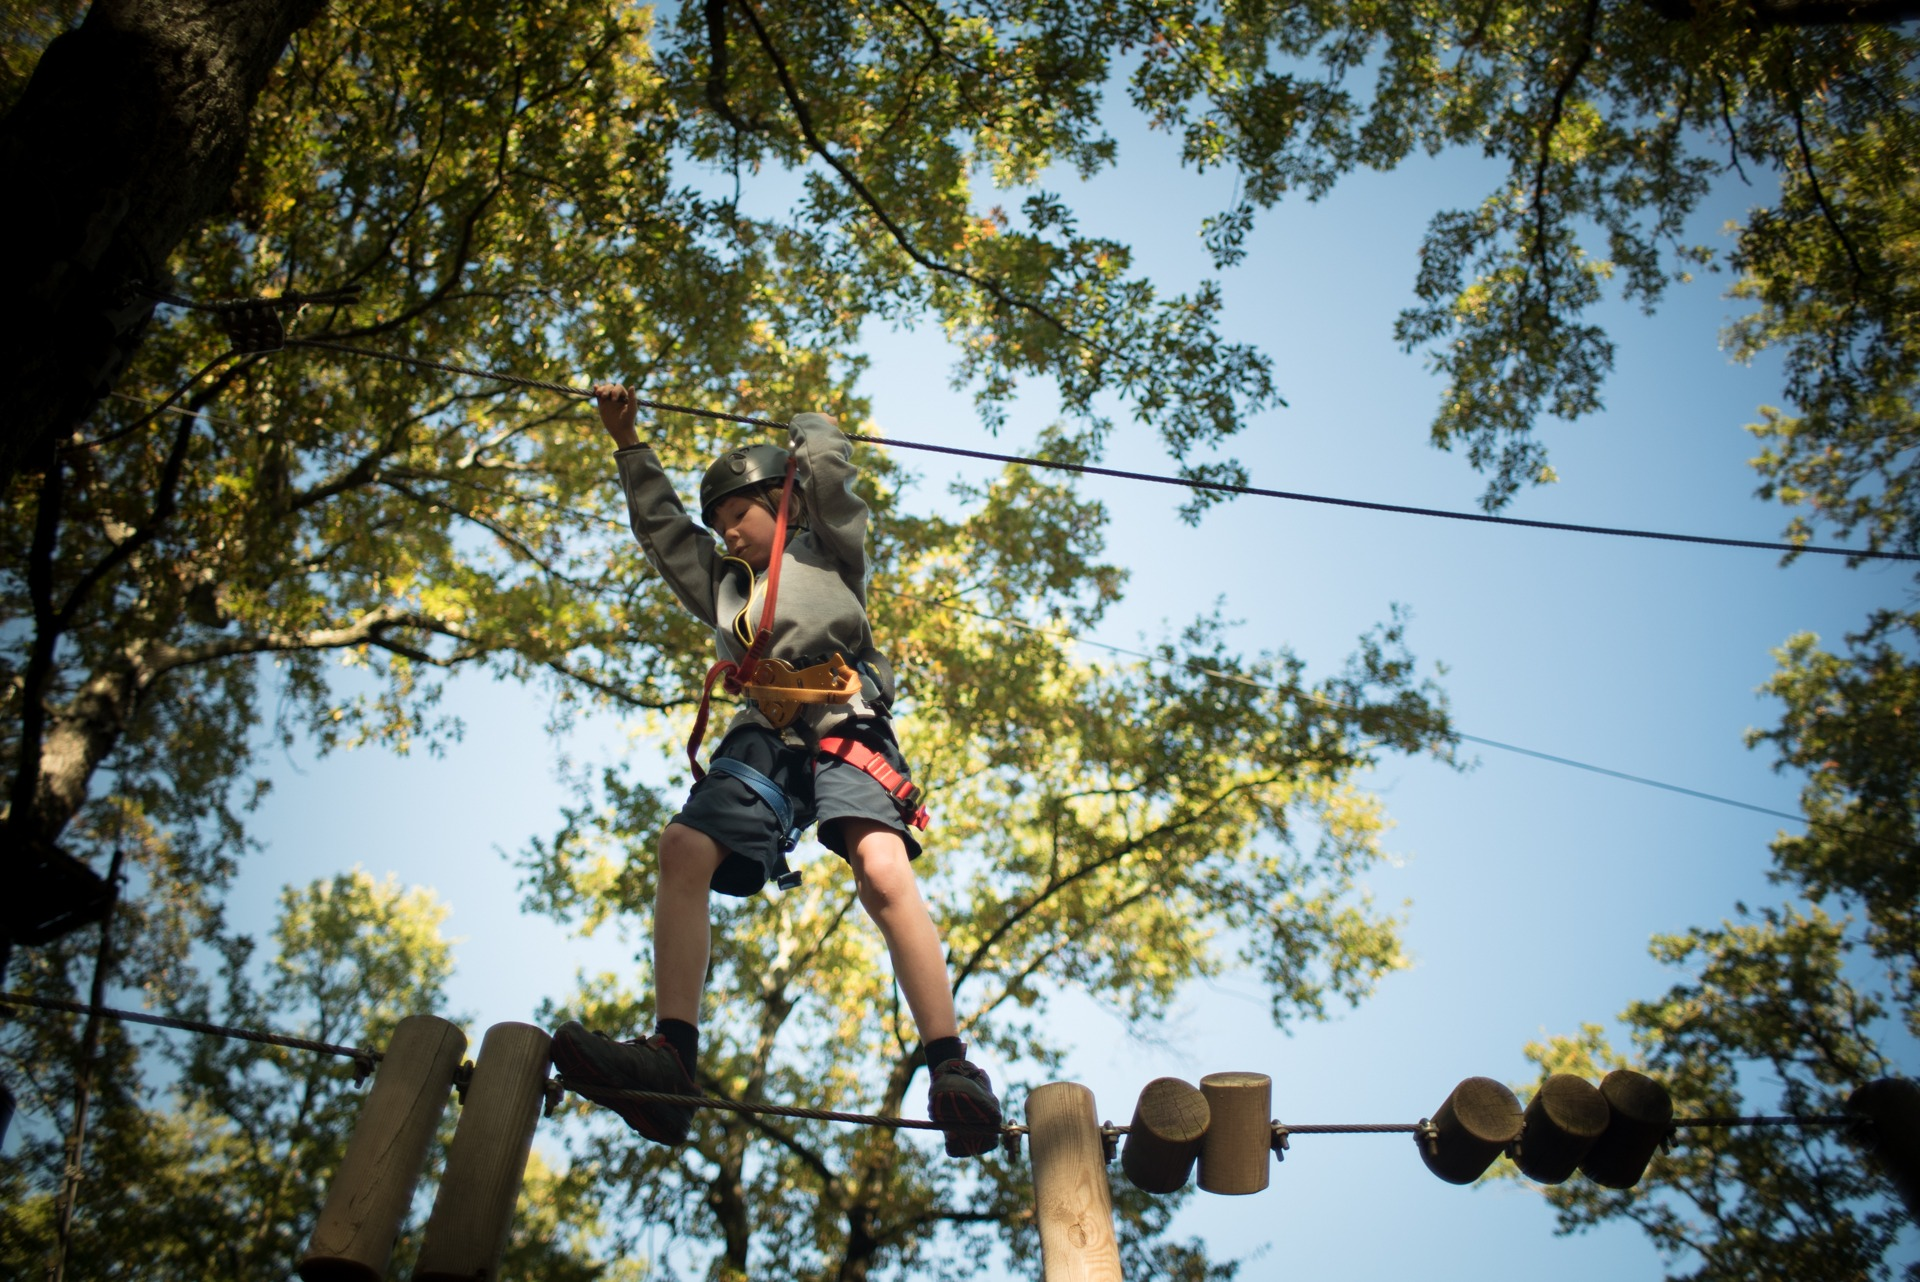 Things to do with kids in Florence Italy include Parco Avventura il Gigante ropes course